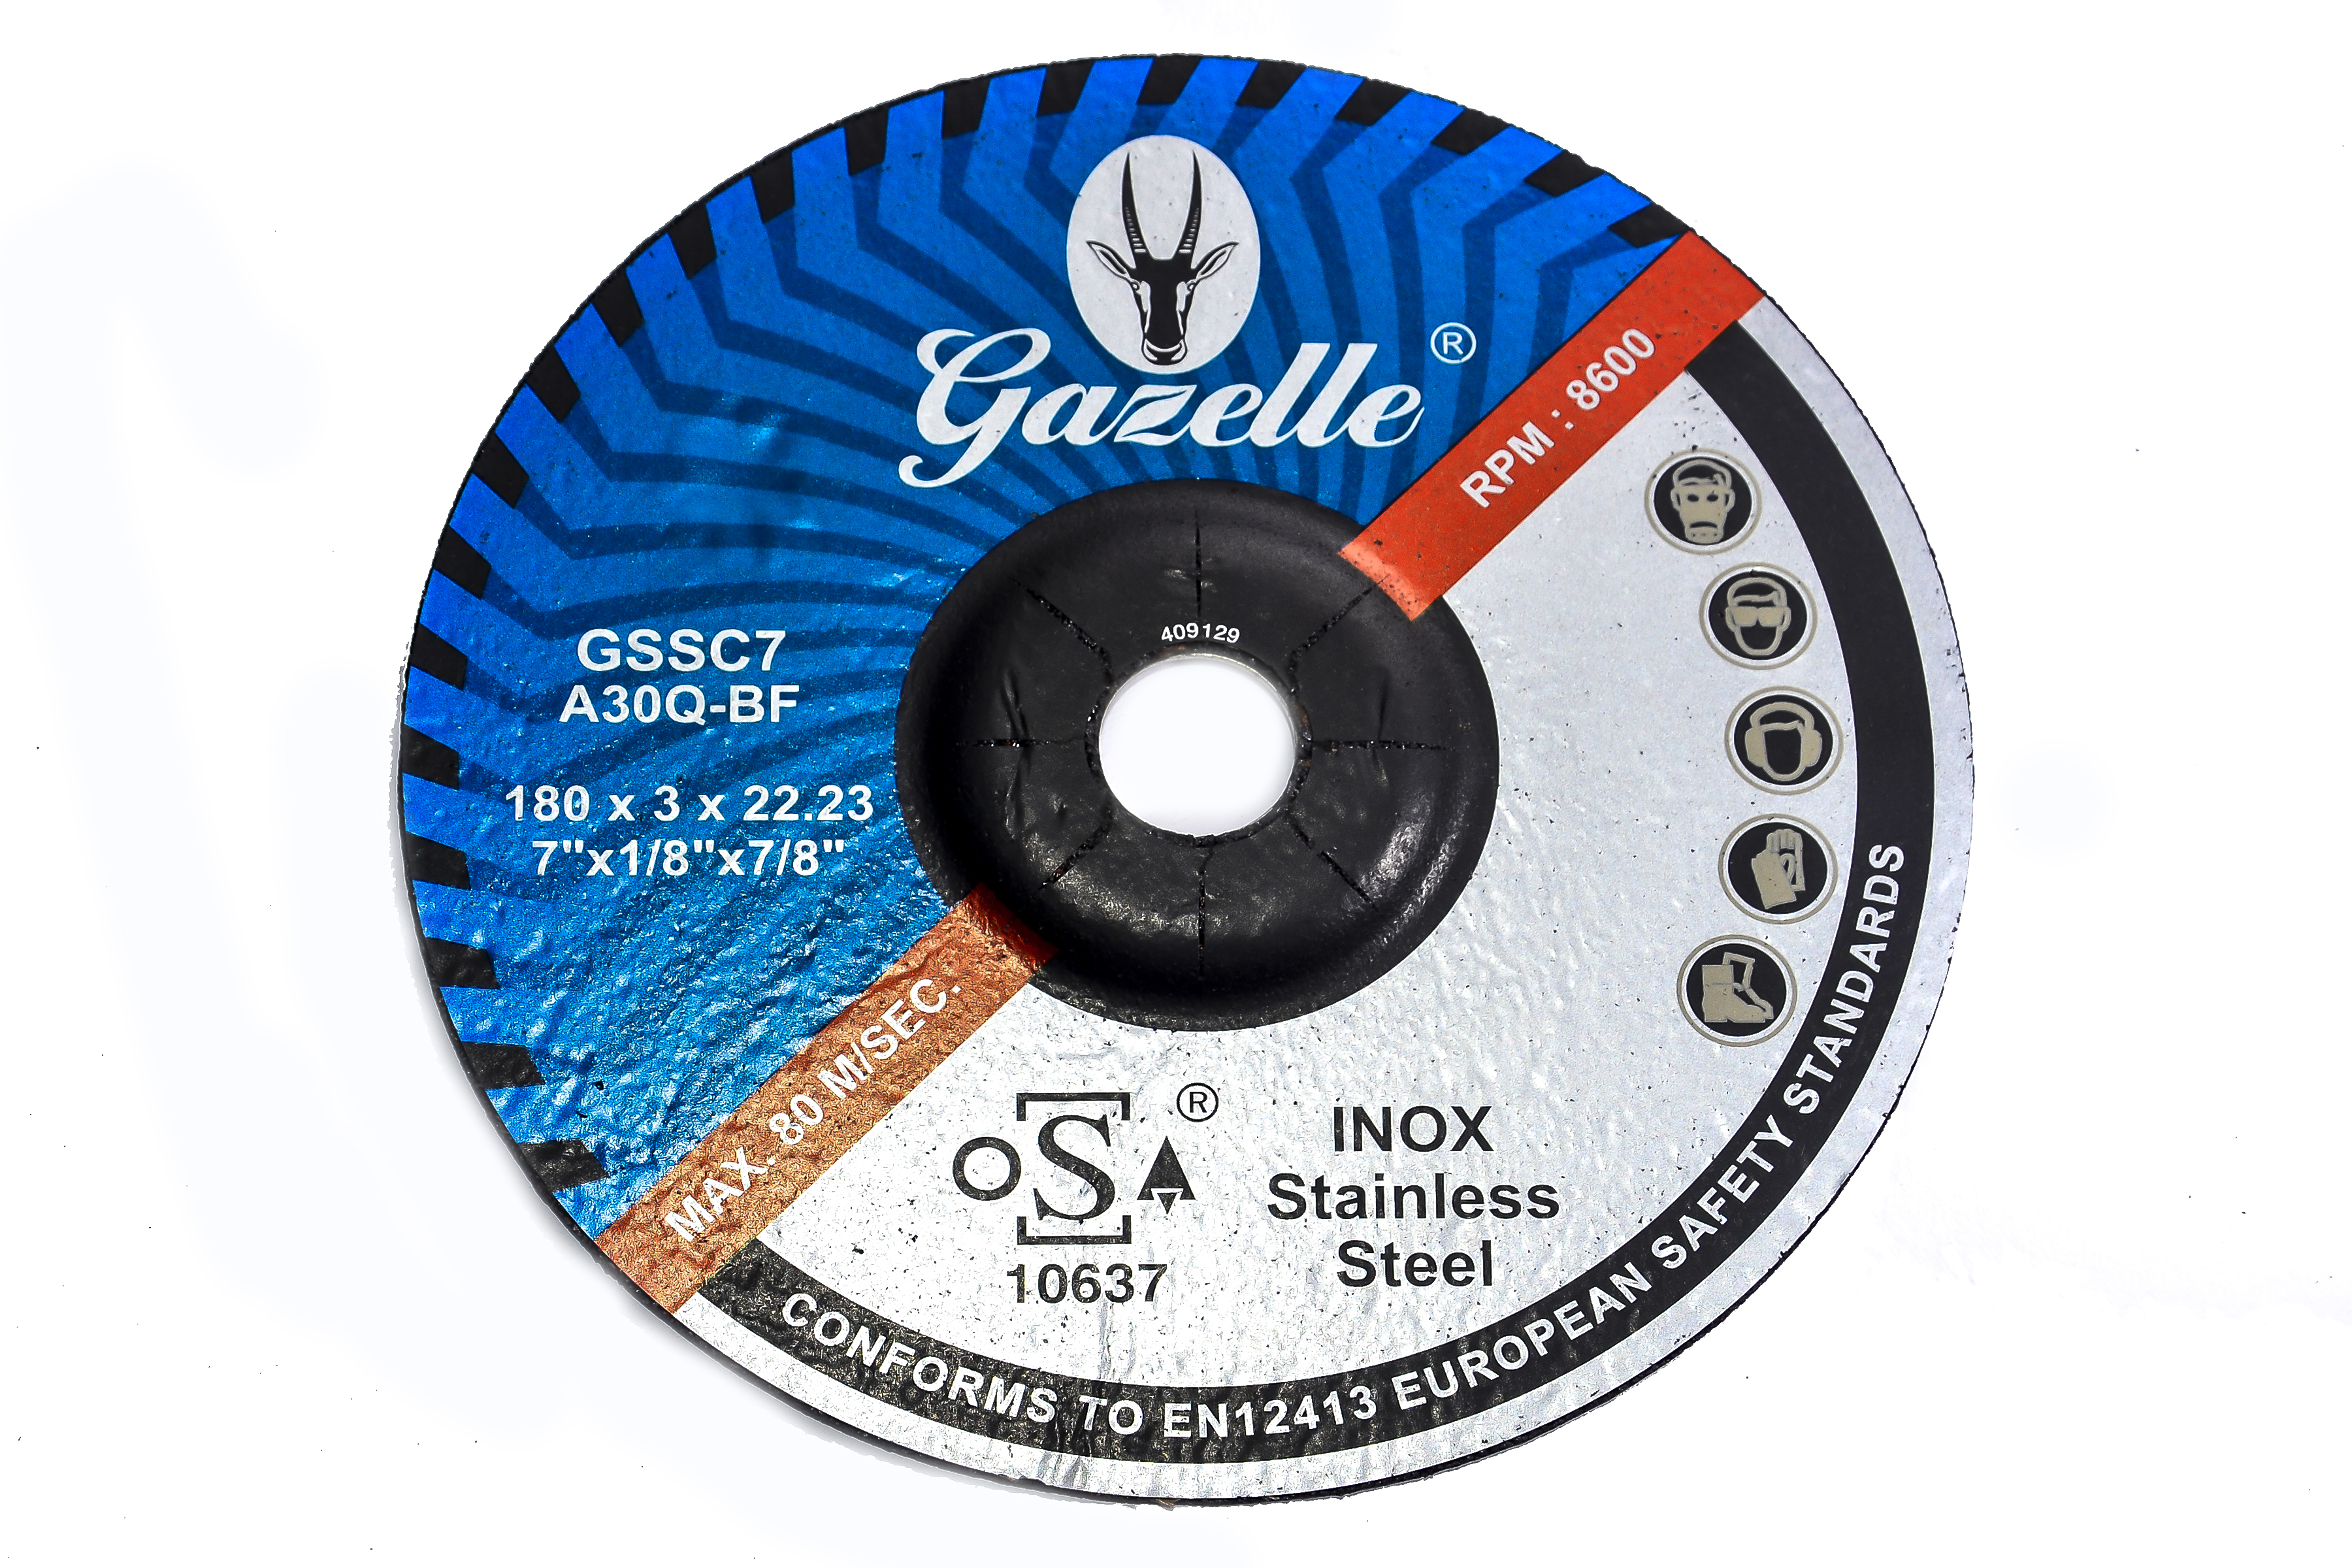 GAZELLE GSSC7 - Stainless Steel Cutting Disc 7in – 180 x 3 x 22mm